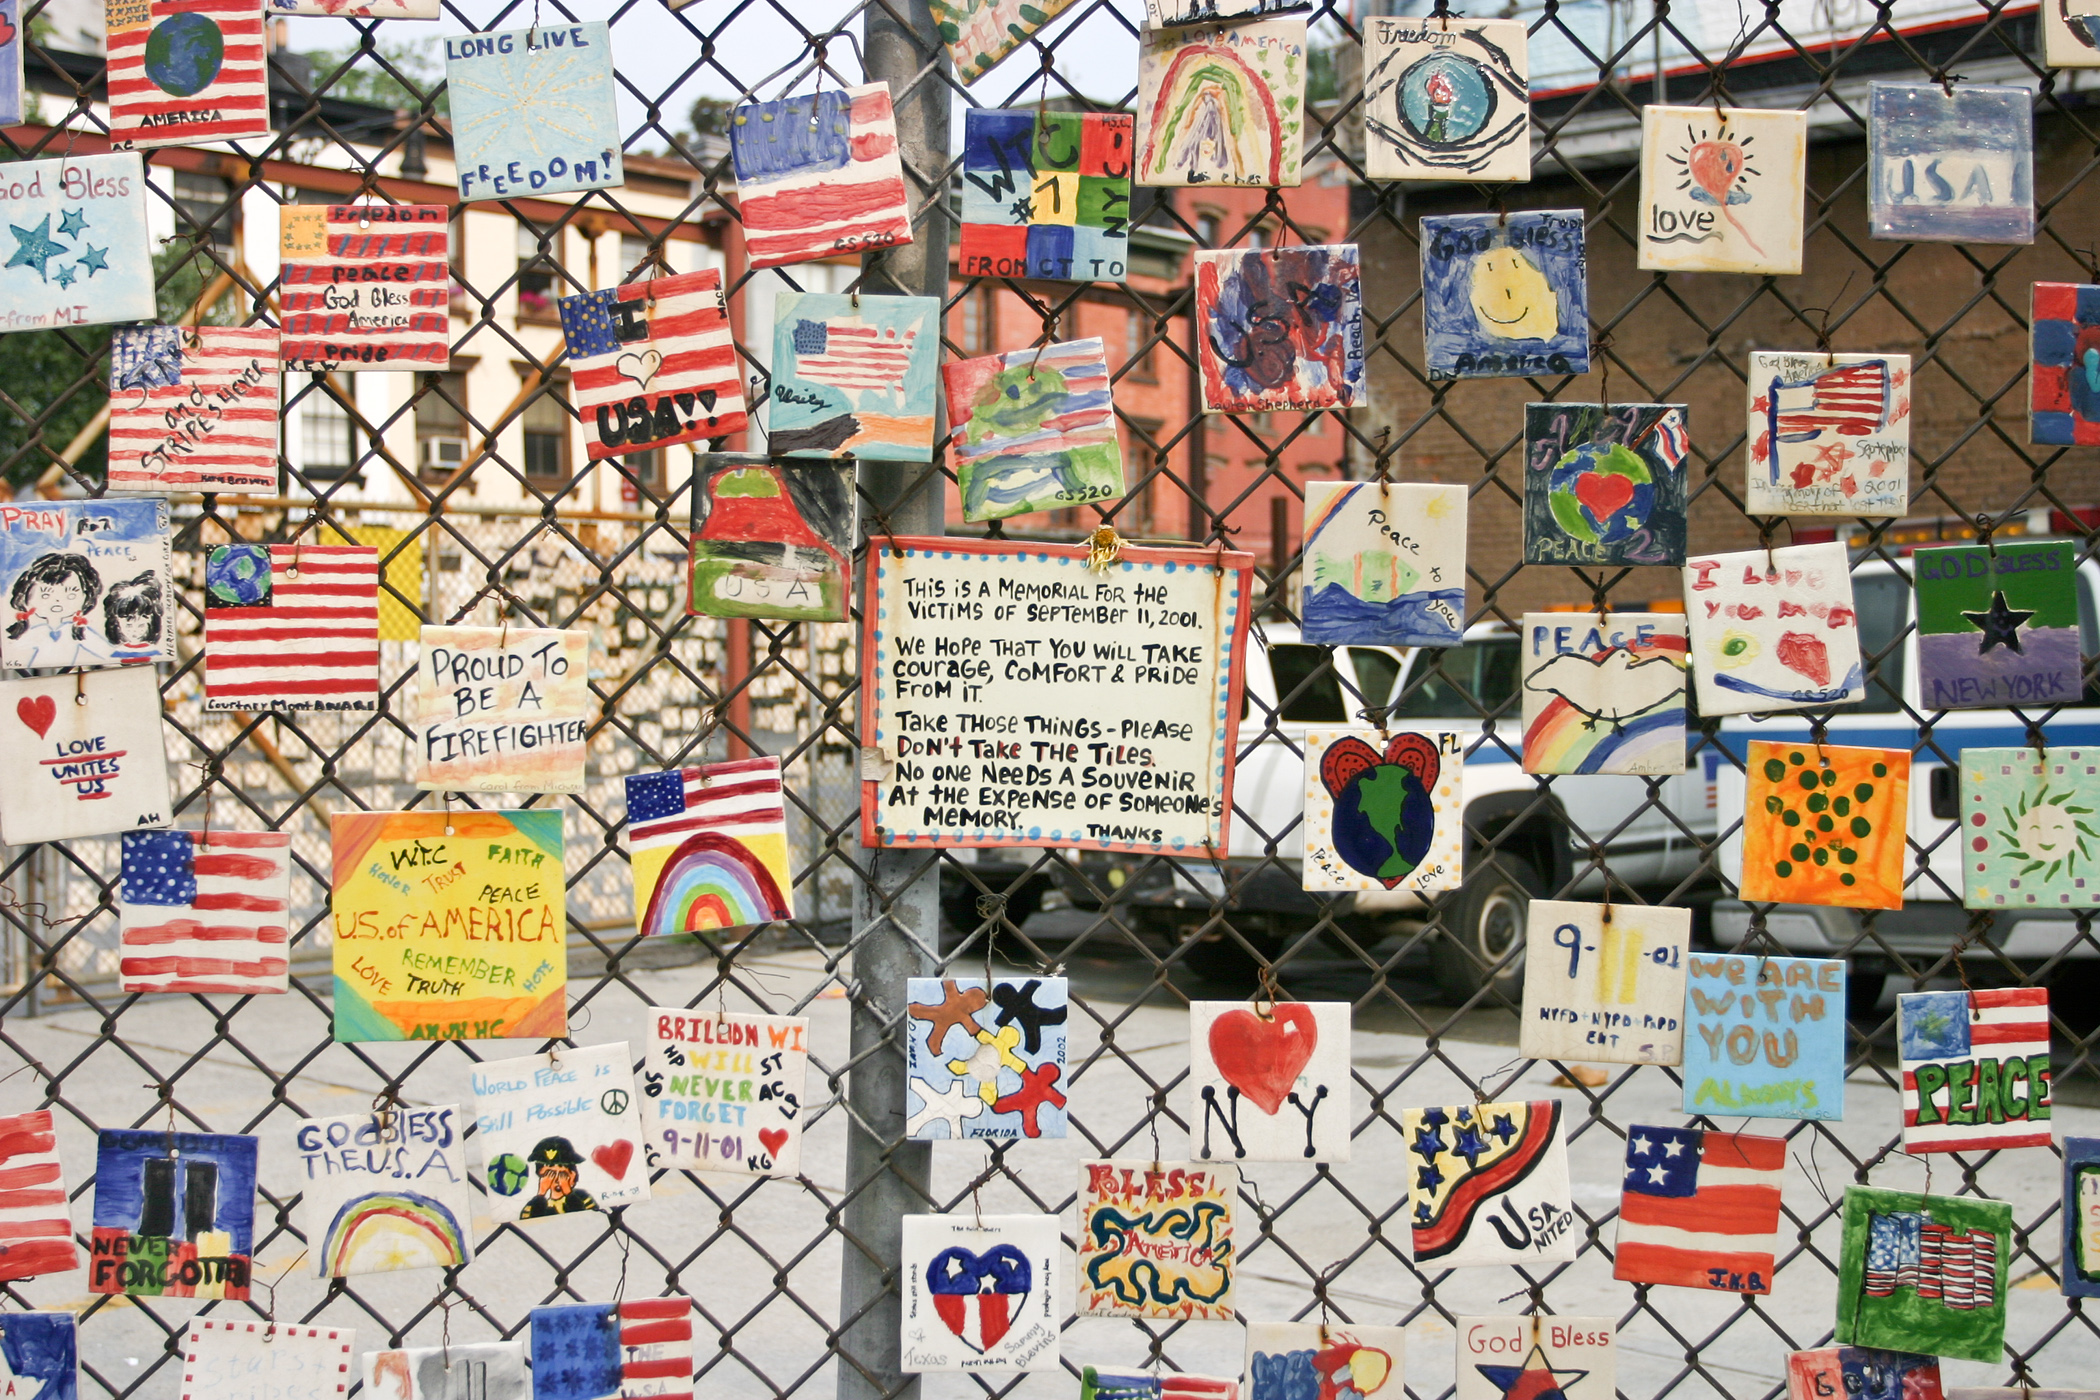 September 11th quotes quotes about september 11th sayings about - Series Of Hand Painted Tiles Dedicated To The Victims Of The September 11 Attacks On The Fence Of A Car Lot In New York City